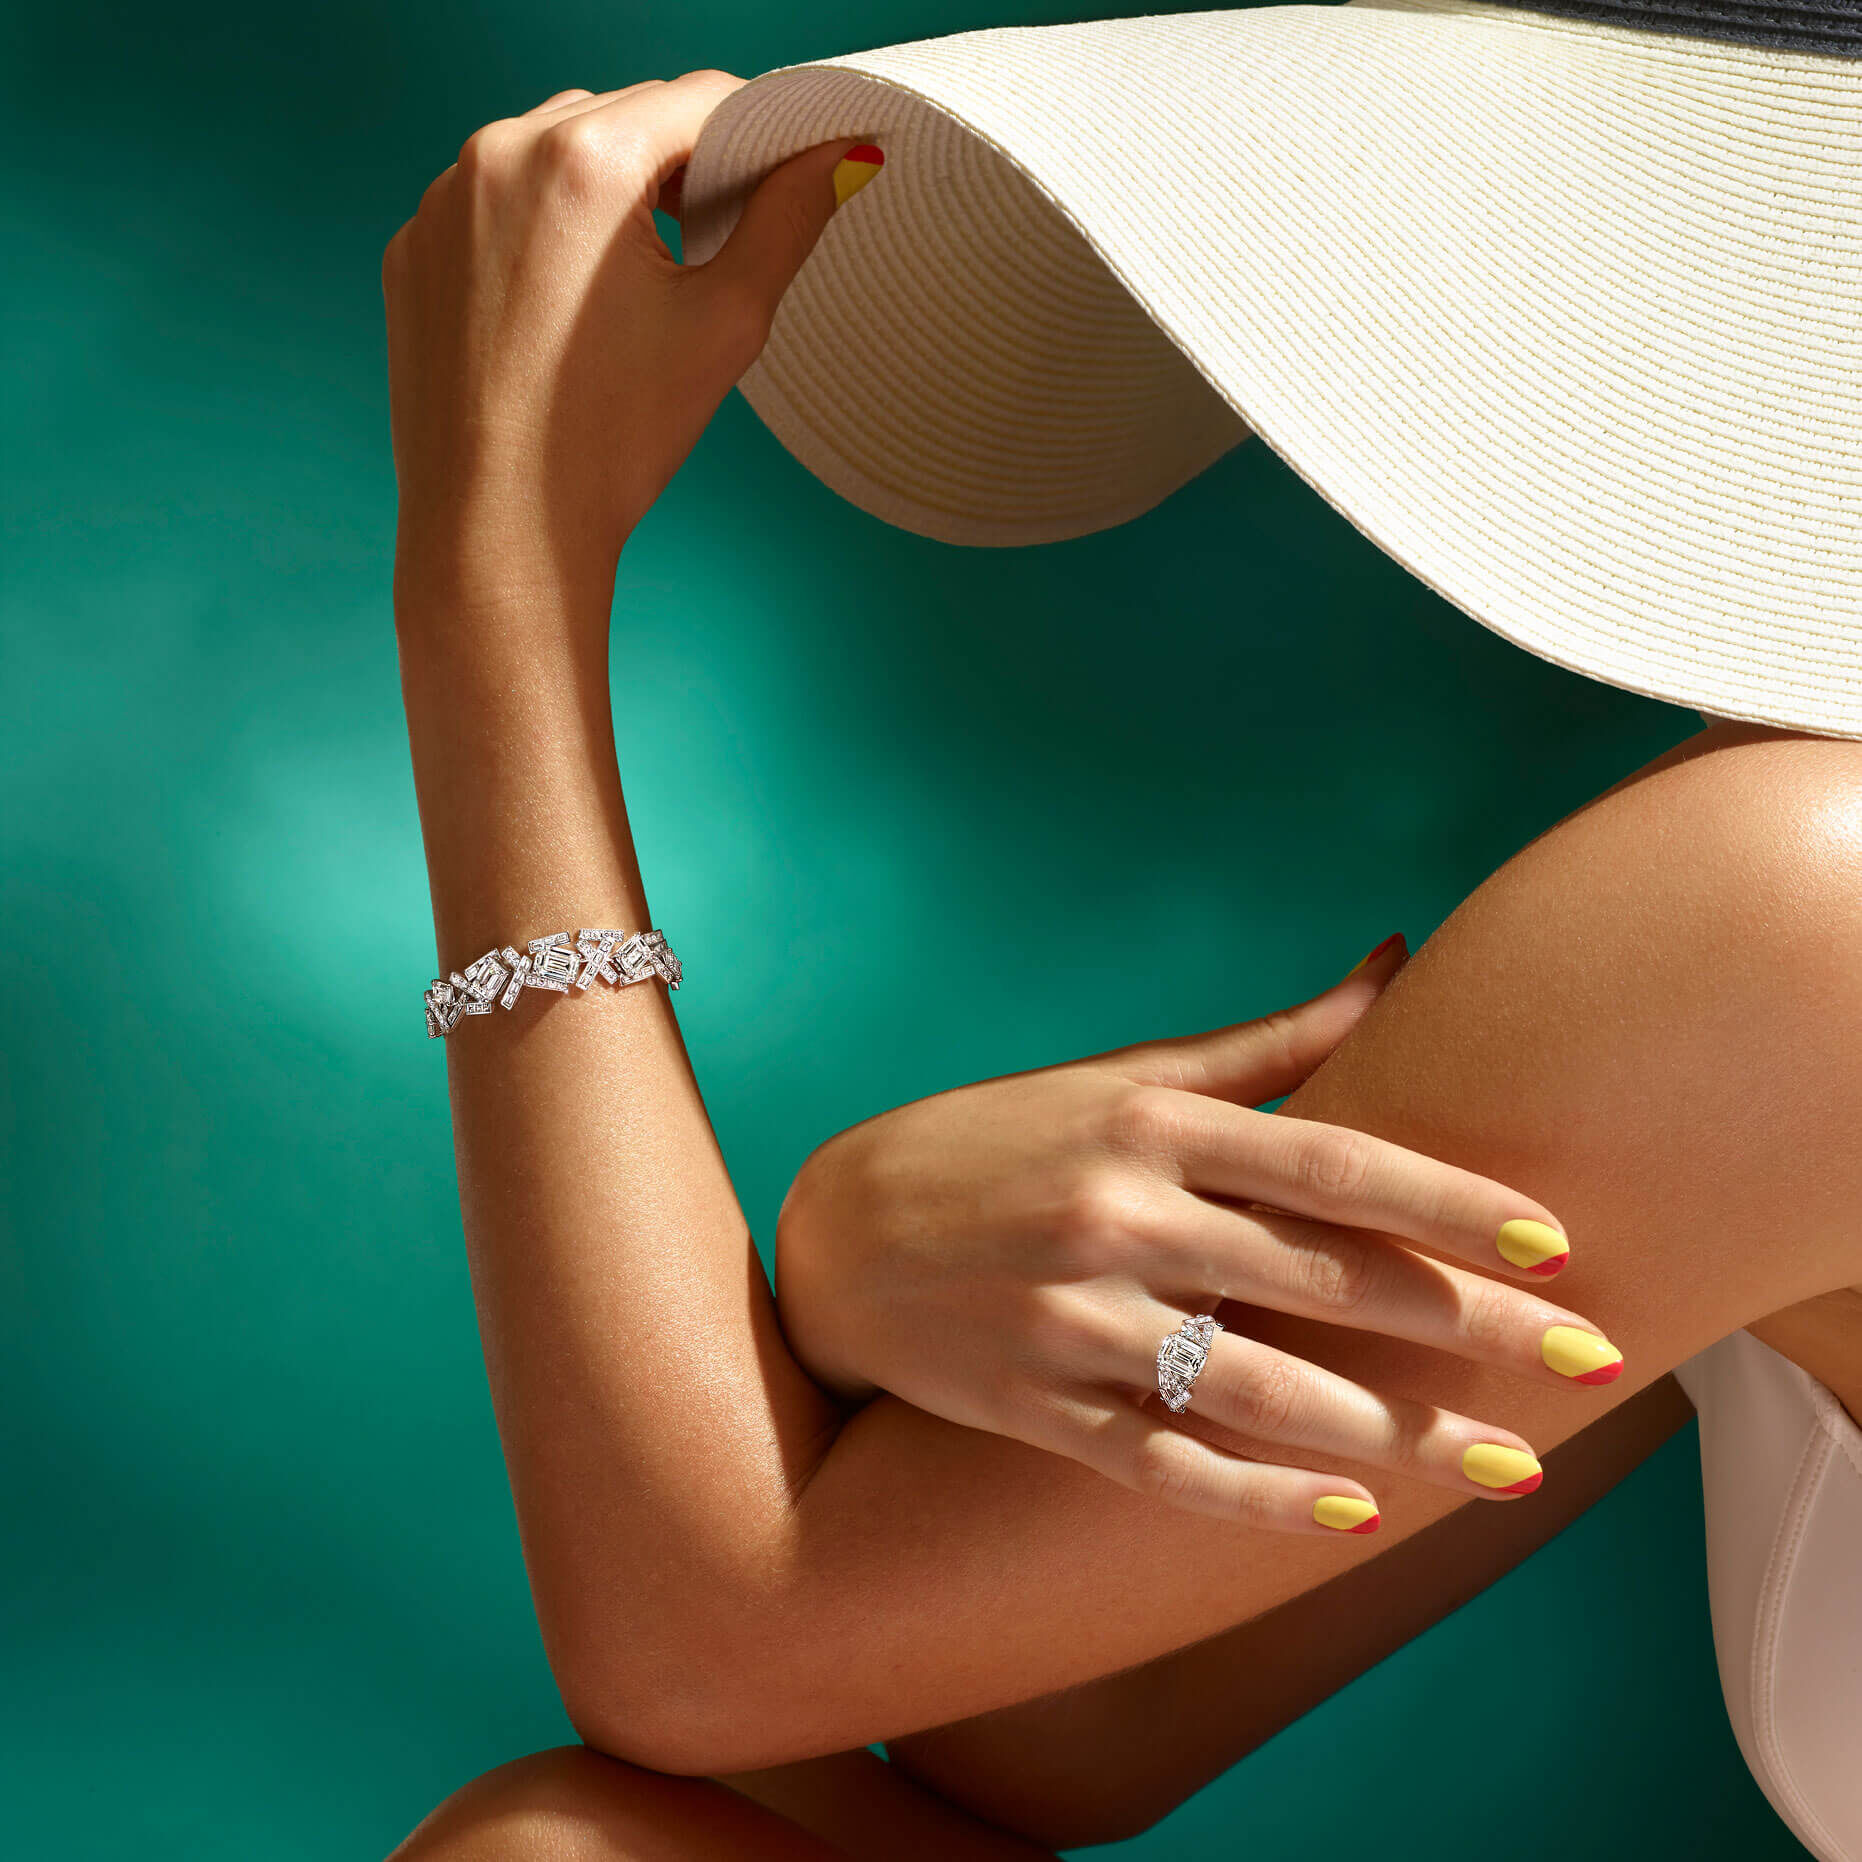 A model in summer outfit wearing Graff Threads Collection Diamond Ring and Bracelet